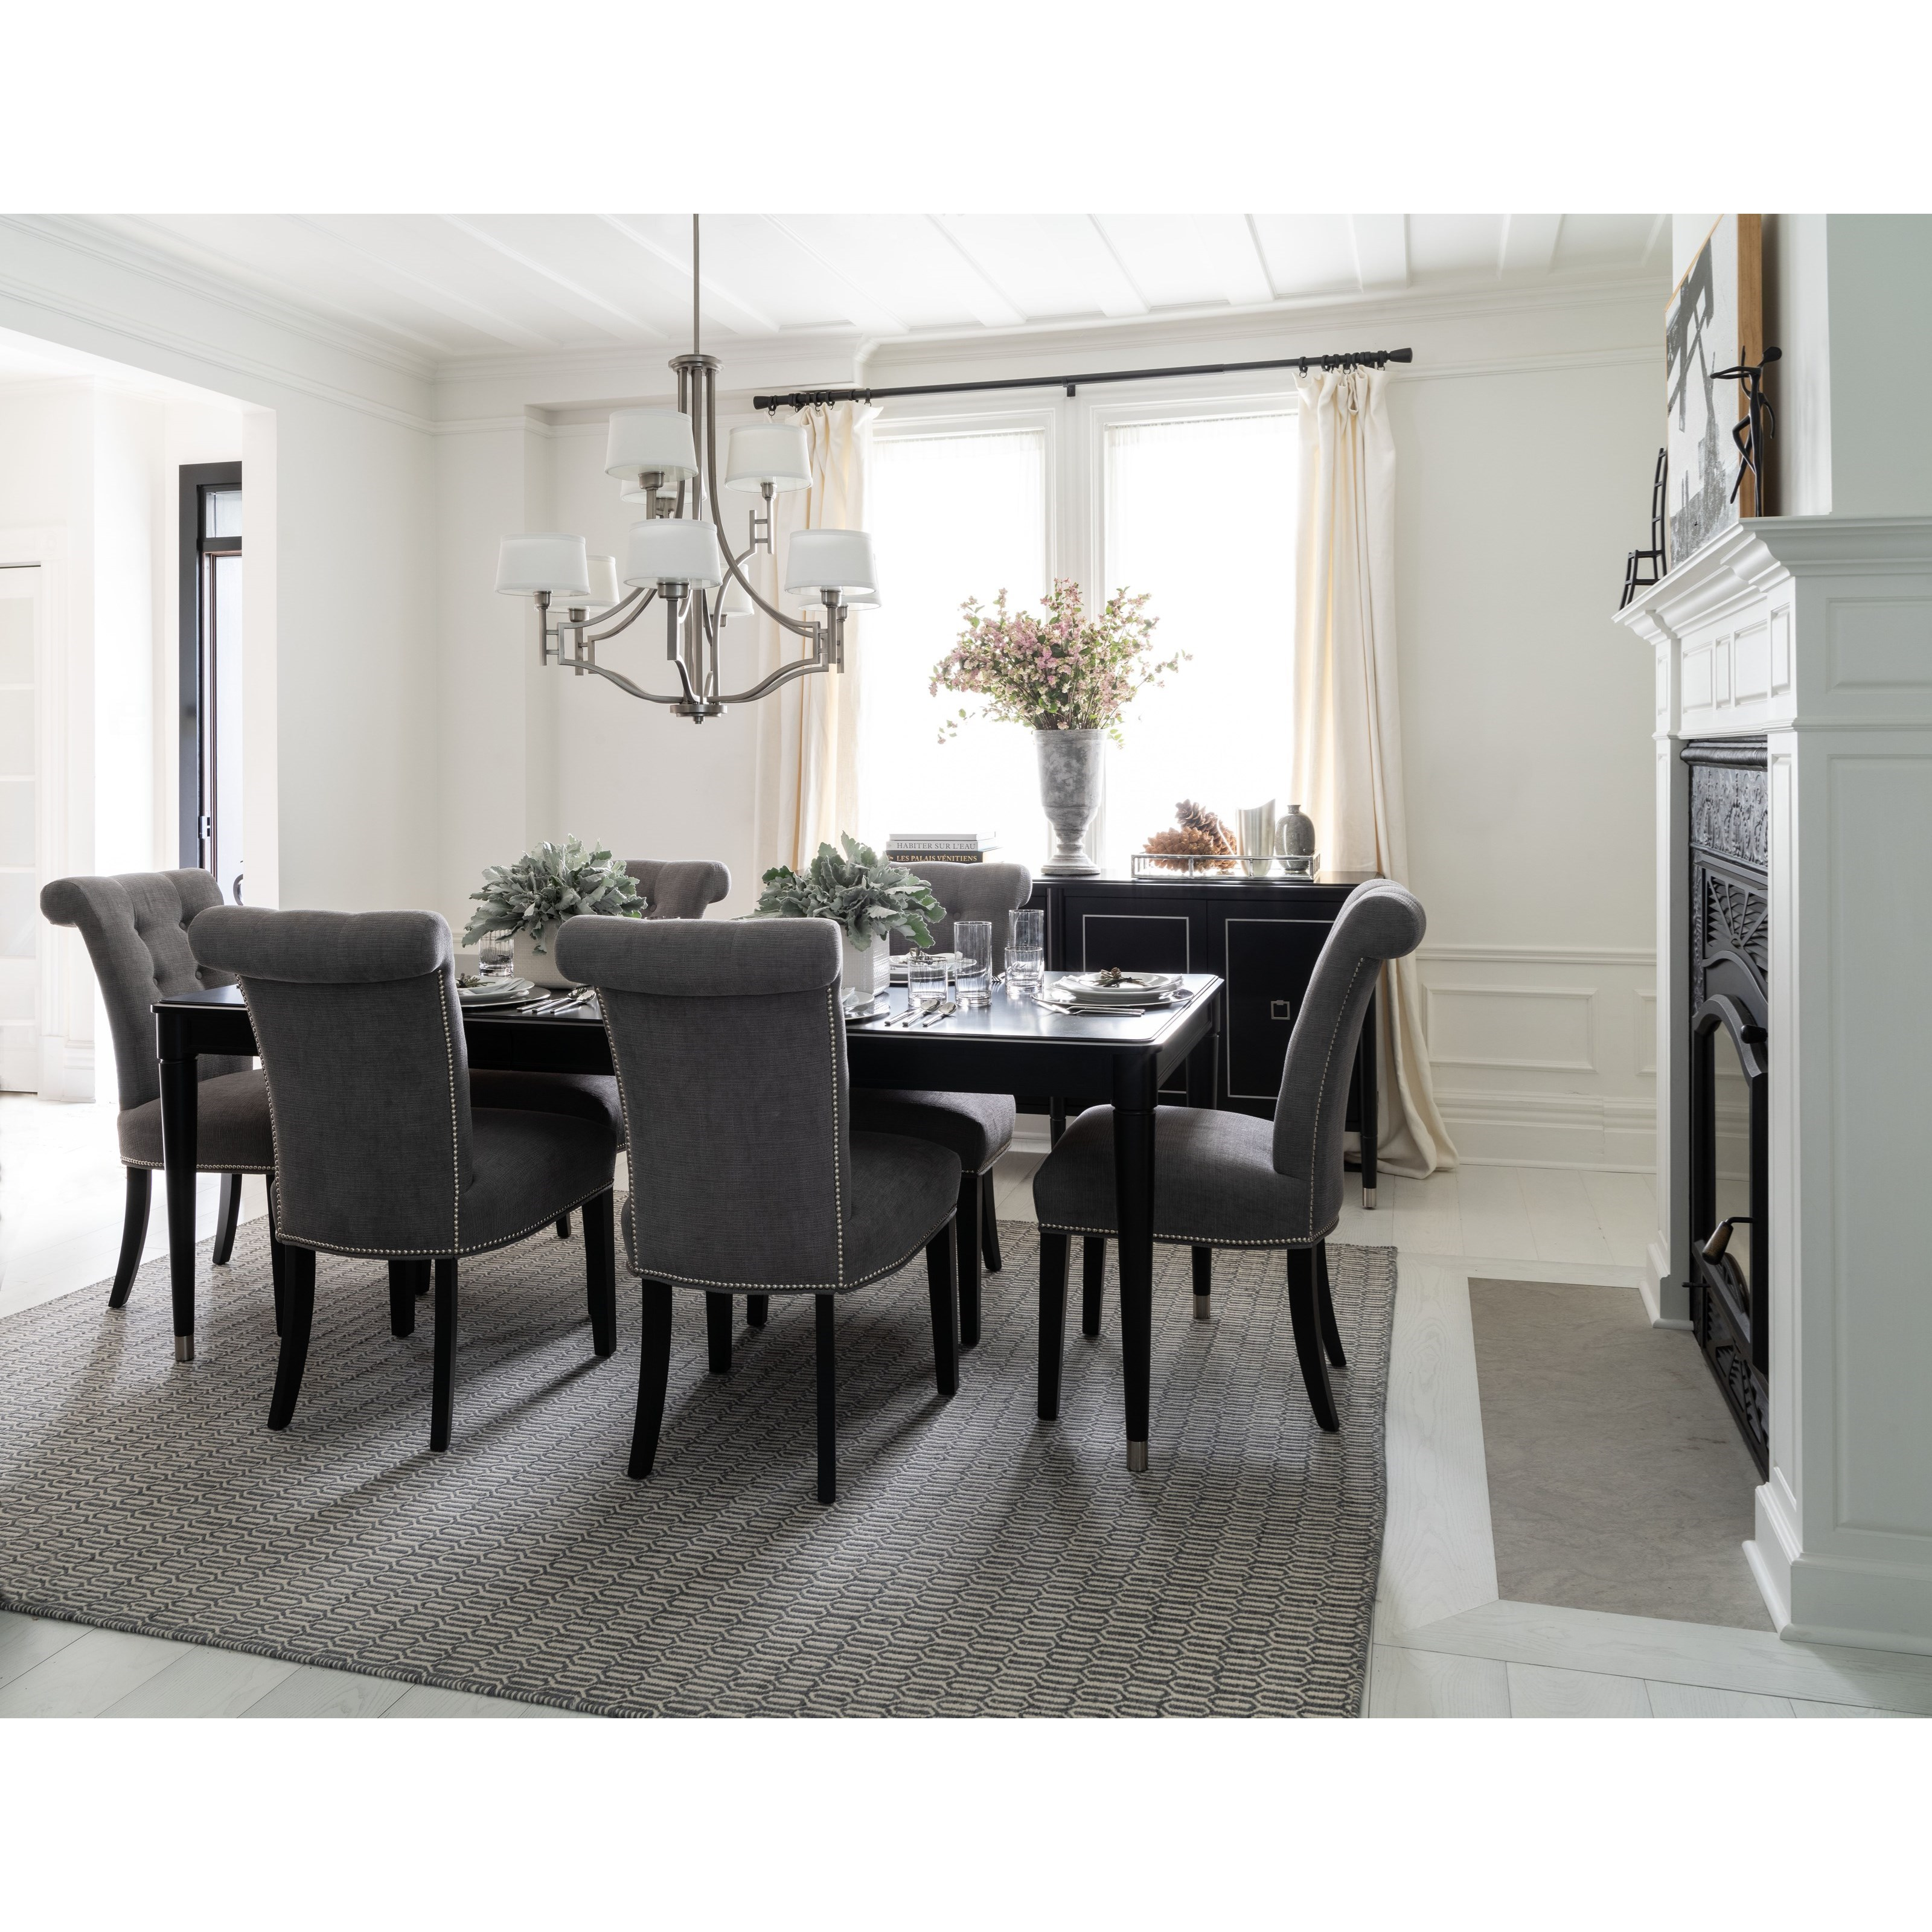 Classic Dining Room Group by Canadel at Jordan's Home Furnishings